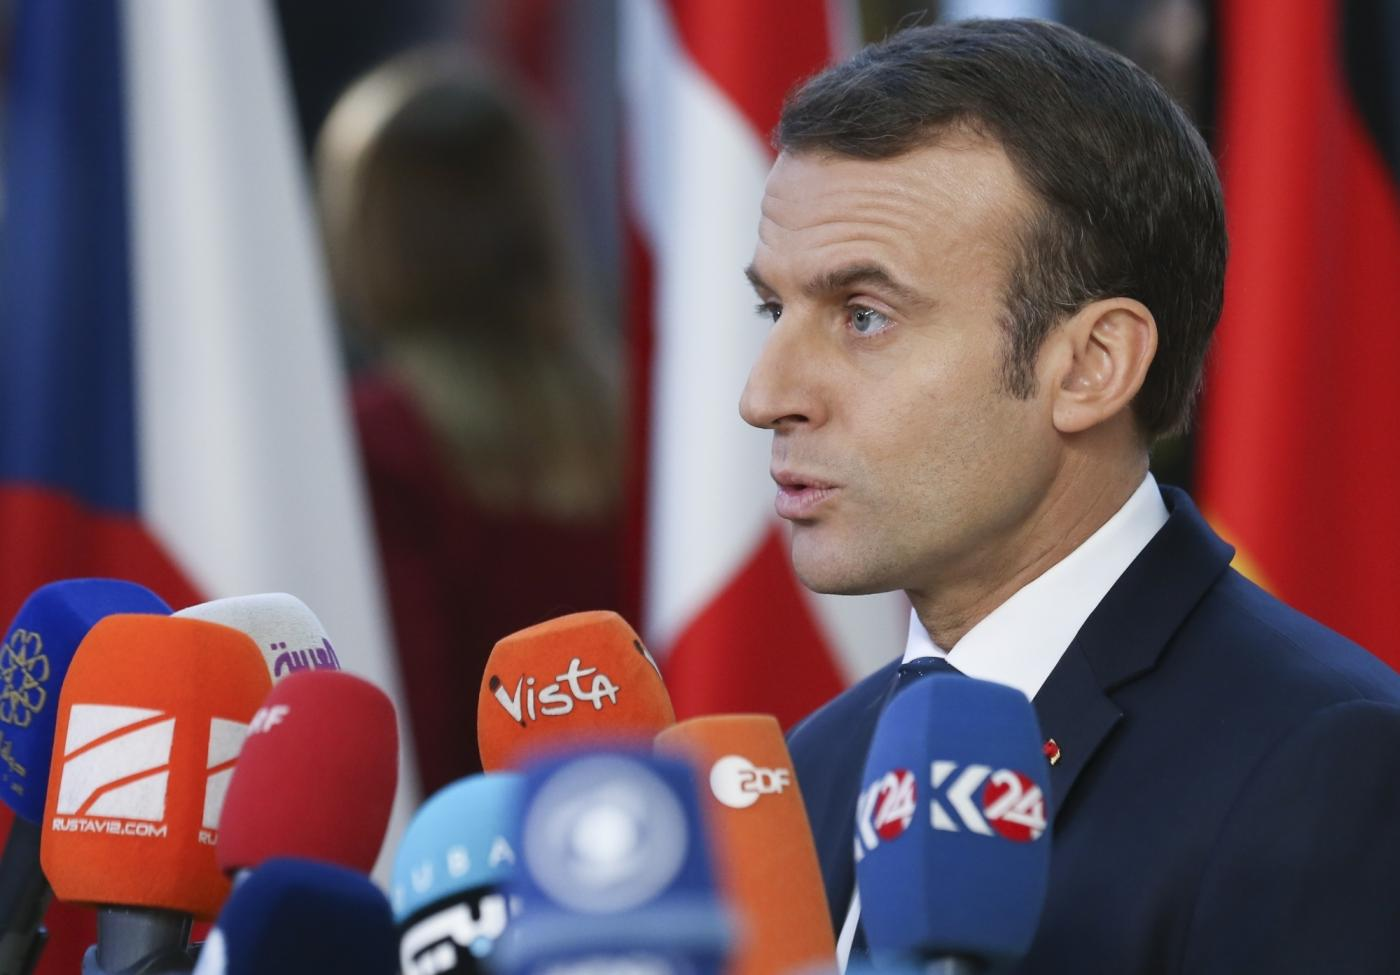 BRUSSELS, Dec. 13, 2018 (Xinhua) -- French President Emmanuel Macron speaks to media upon his arrival at a two-day EU Summit in Brussels, Belgium, Dec. 13, 2018. (Xinhua/Ye Pingfan/IANS) by .